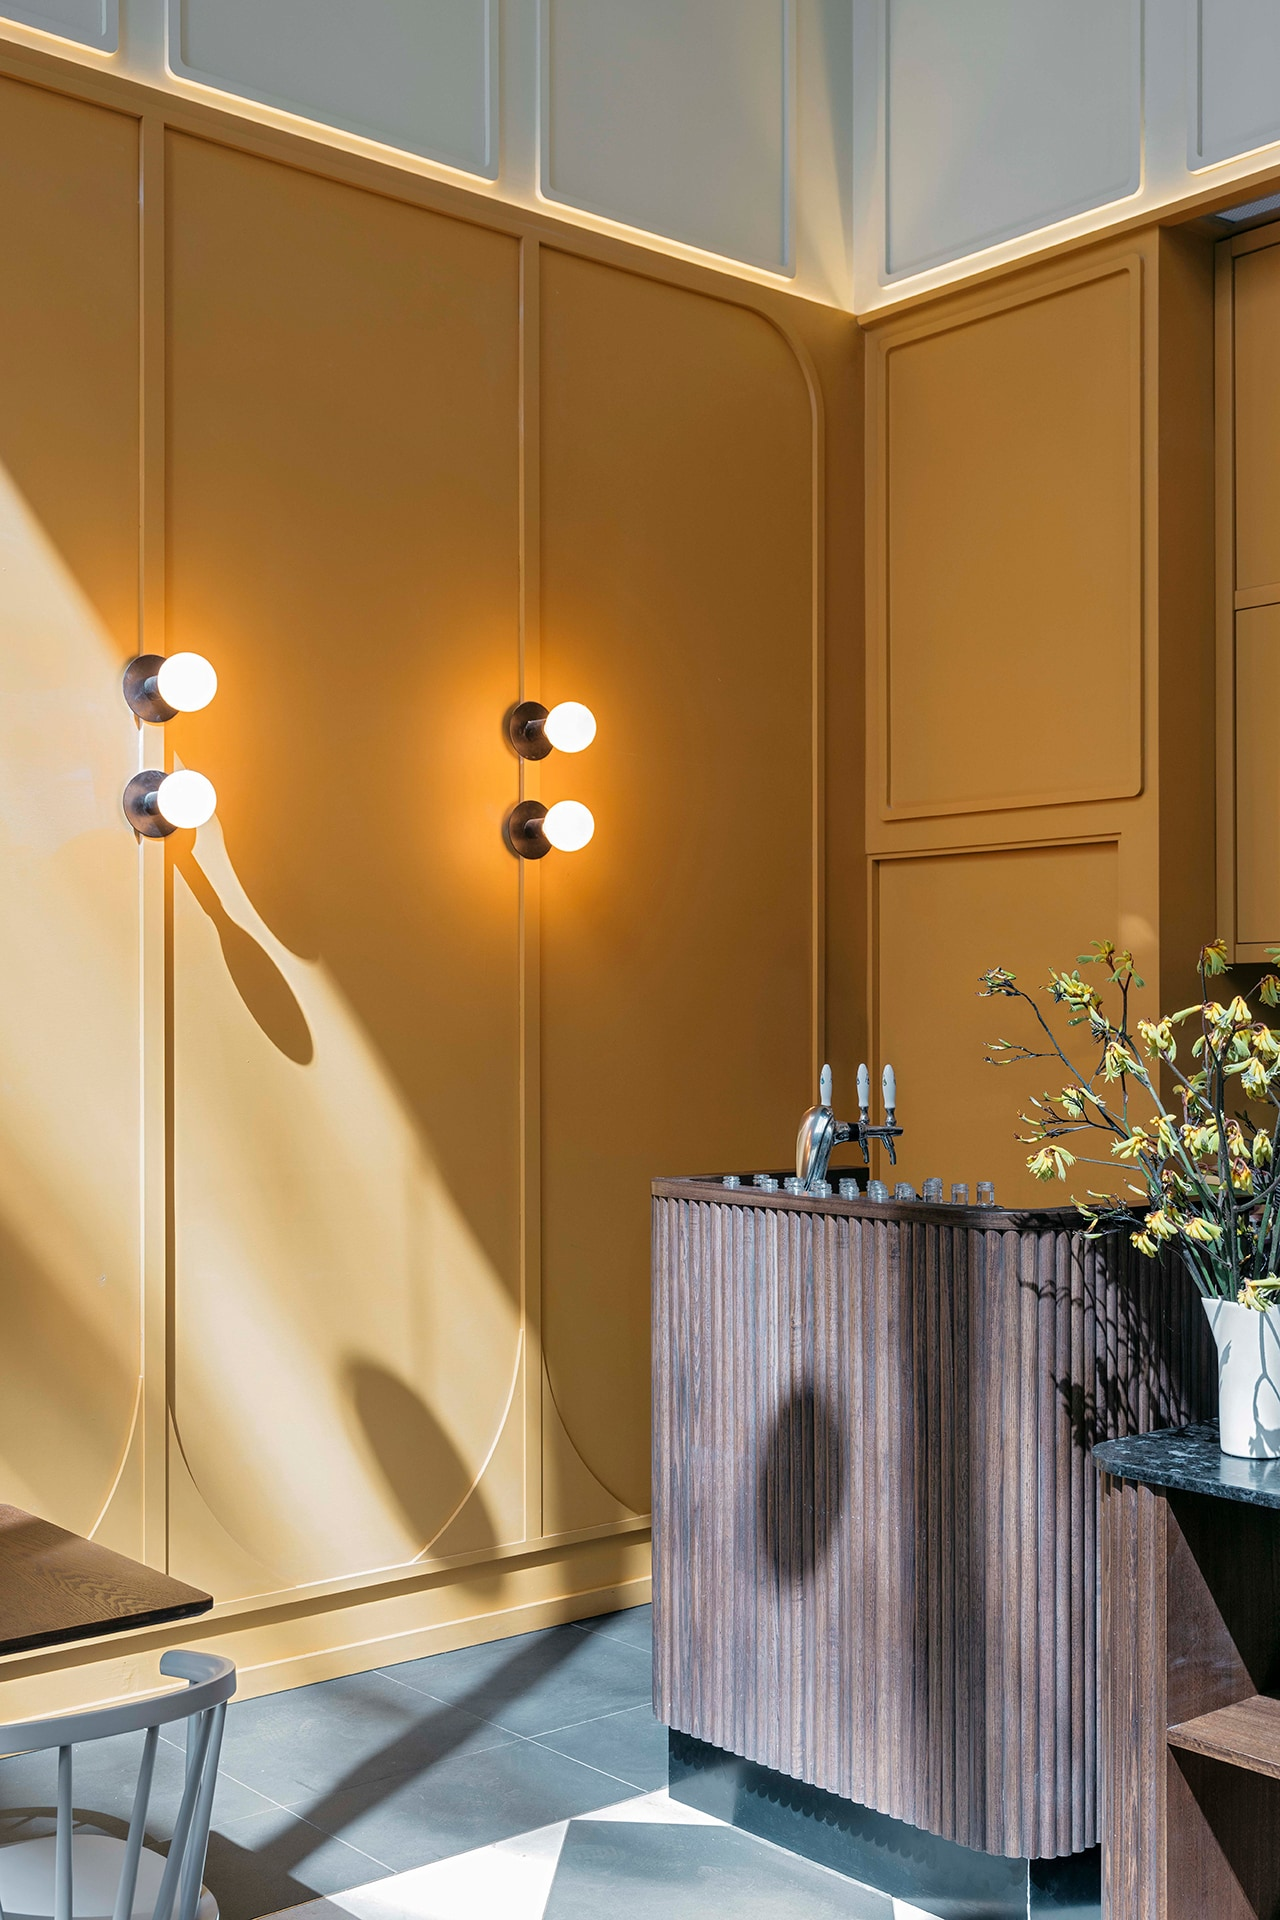 Relaxed optimism: a new café in Melbourne embraces sunny shades of marigold